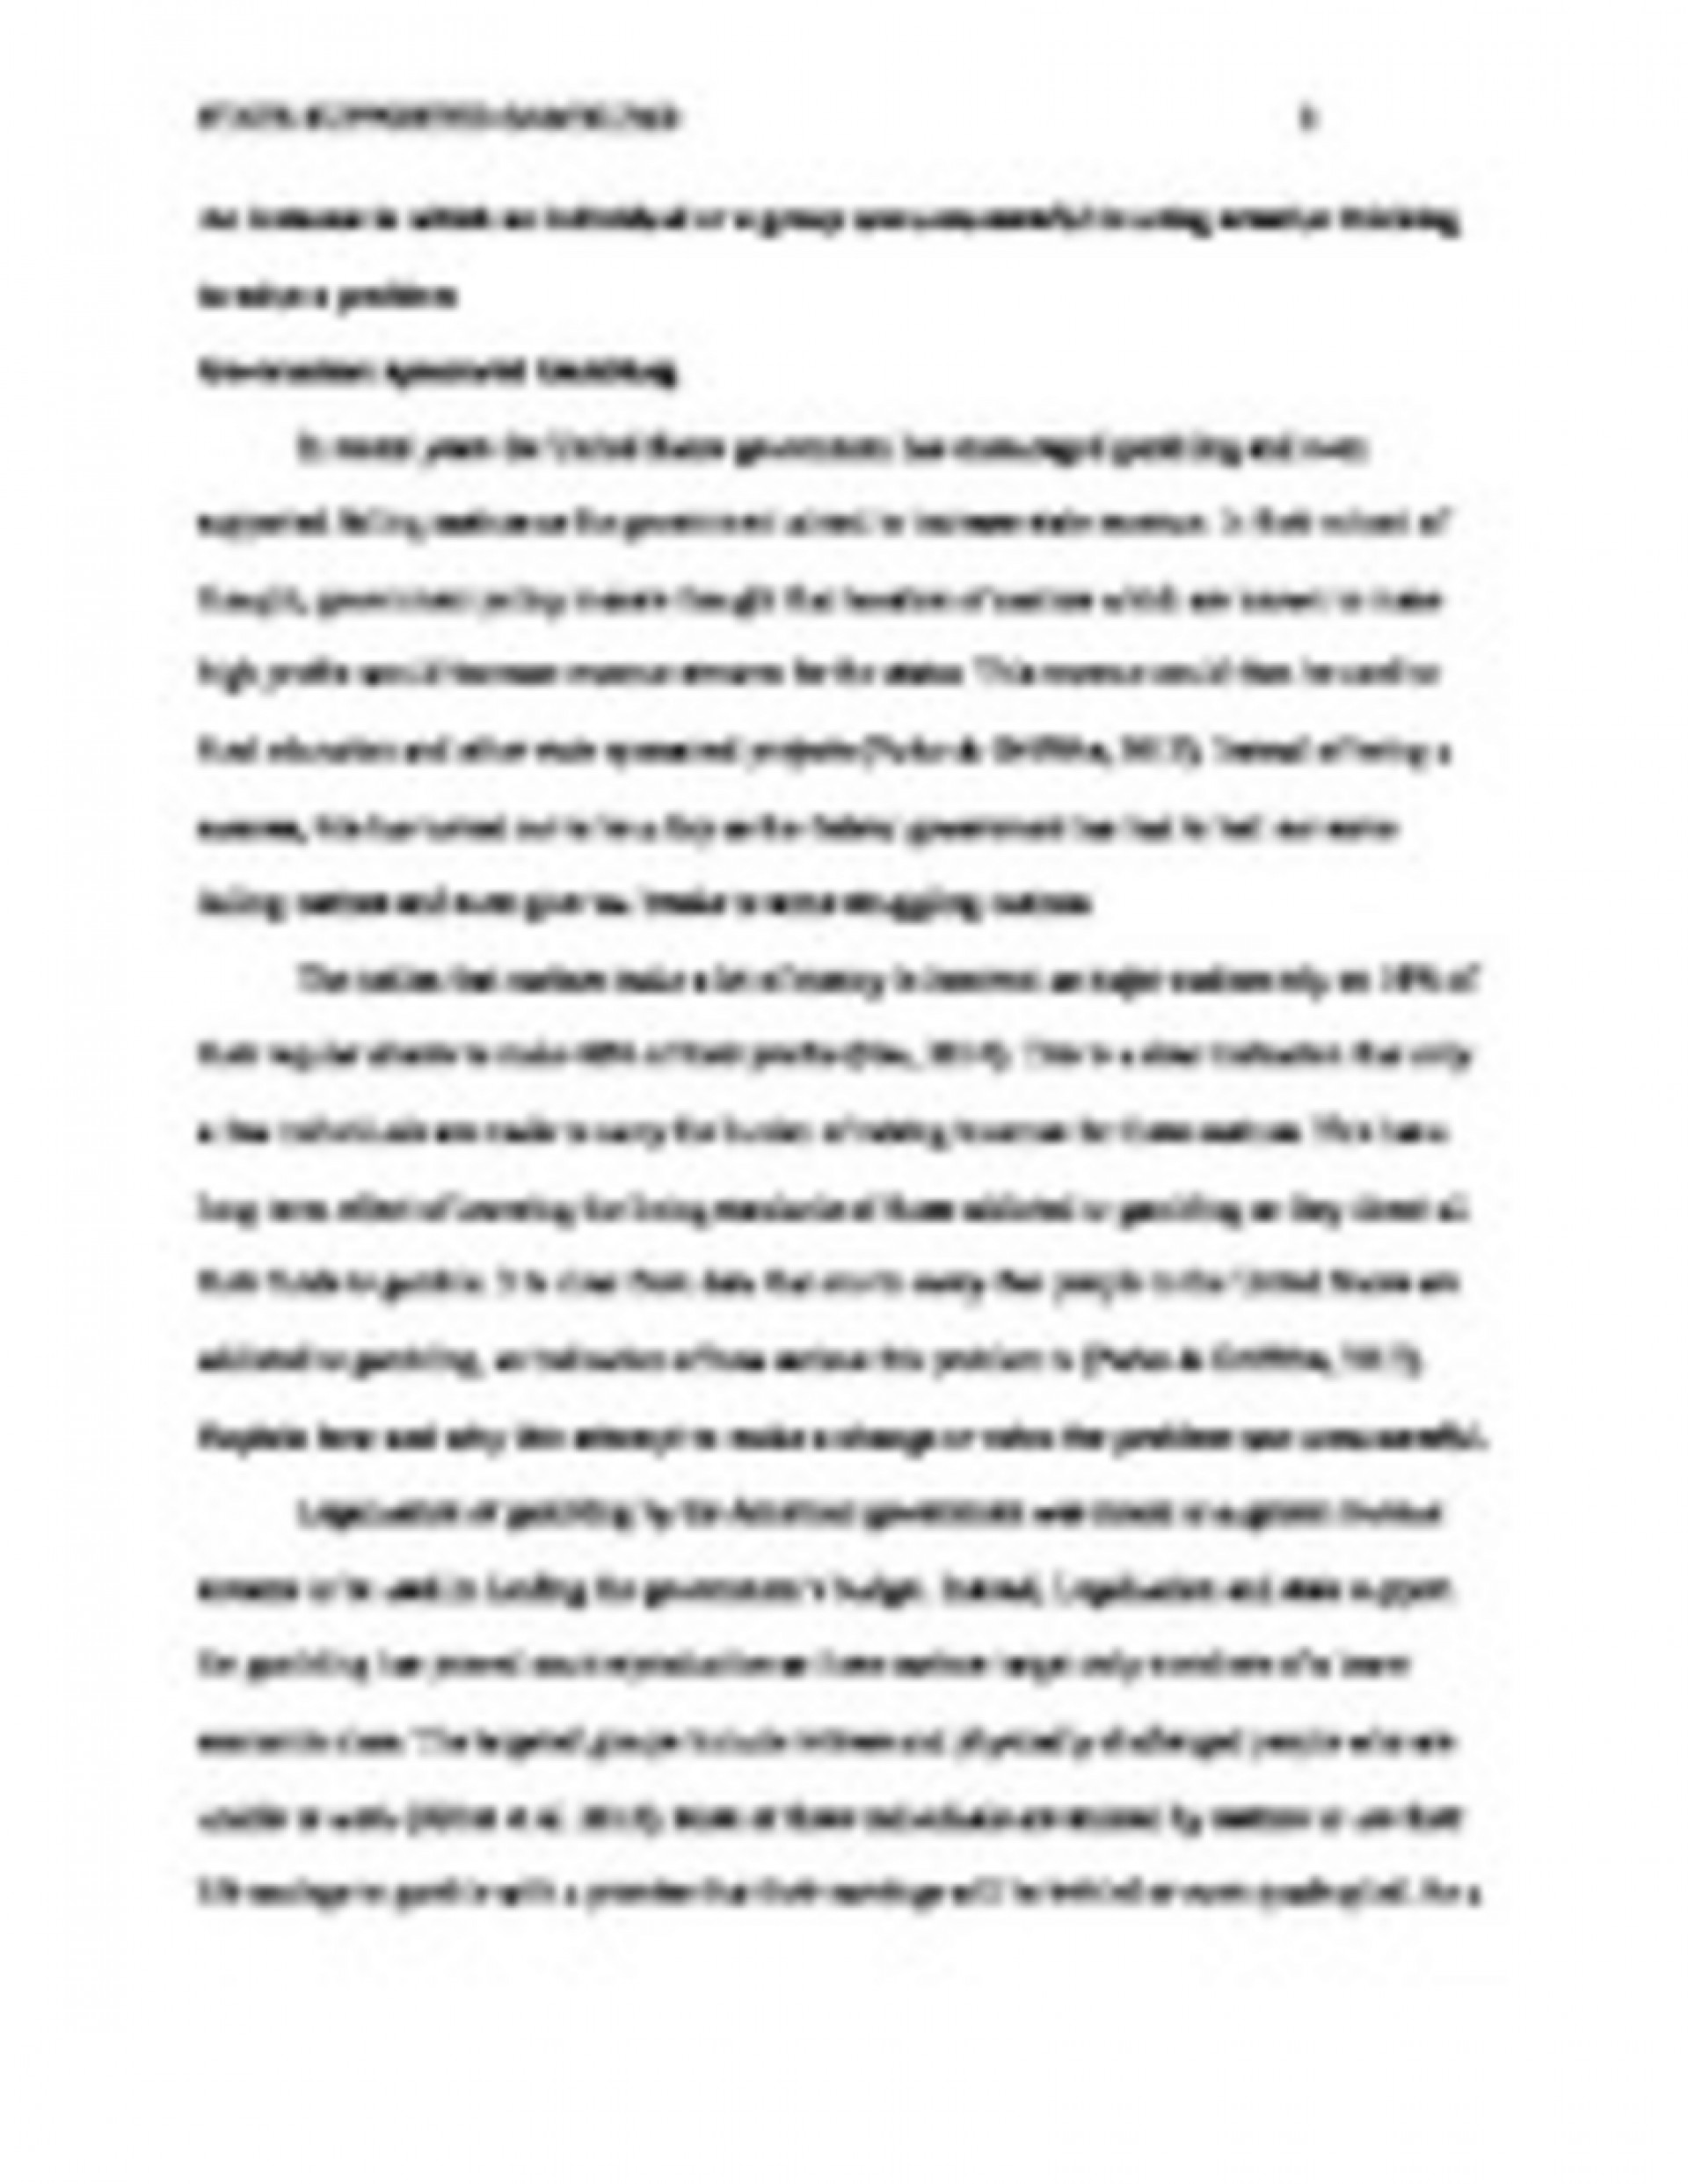 015 State Supported Gamblingpage1 Word Essay Unforgettable 700 Format About Myself Sample 1920